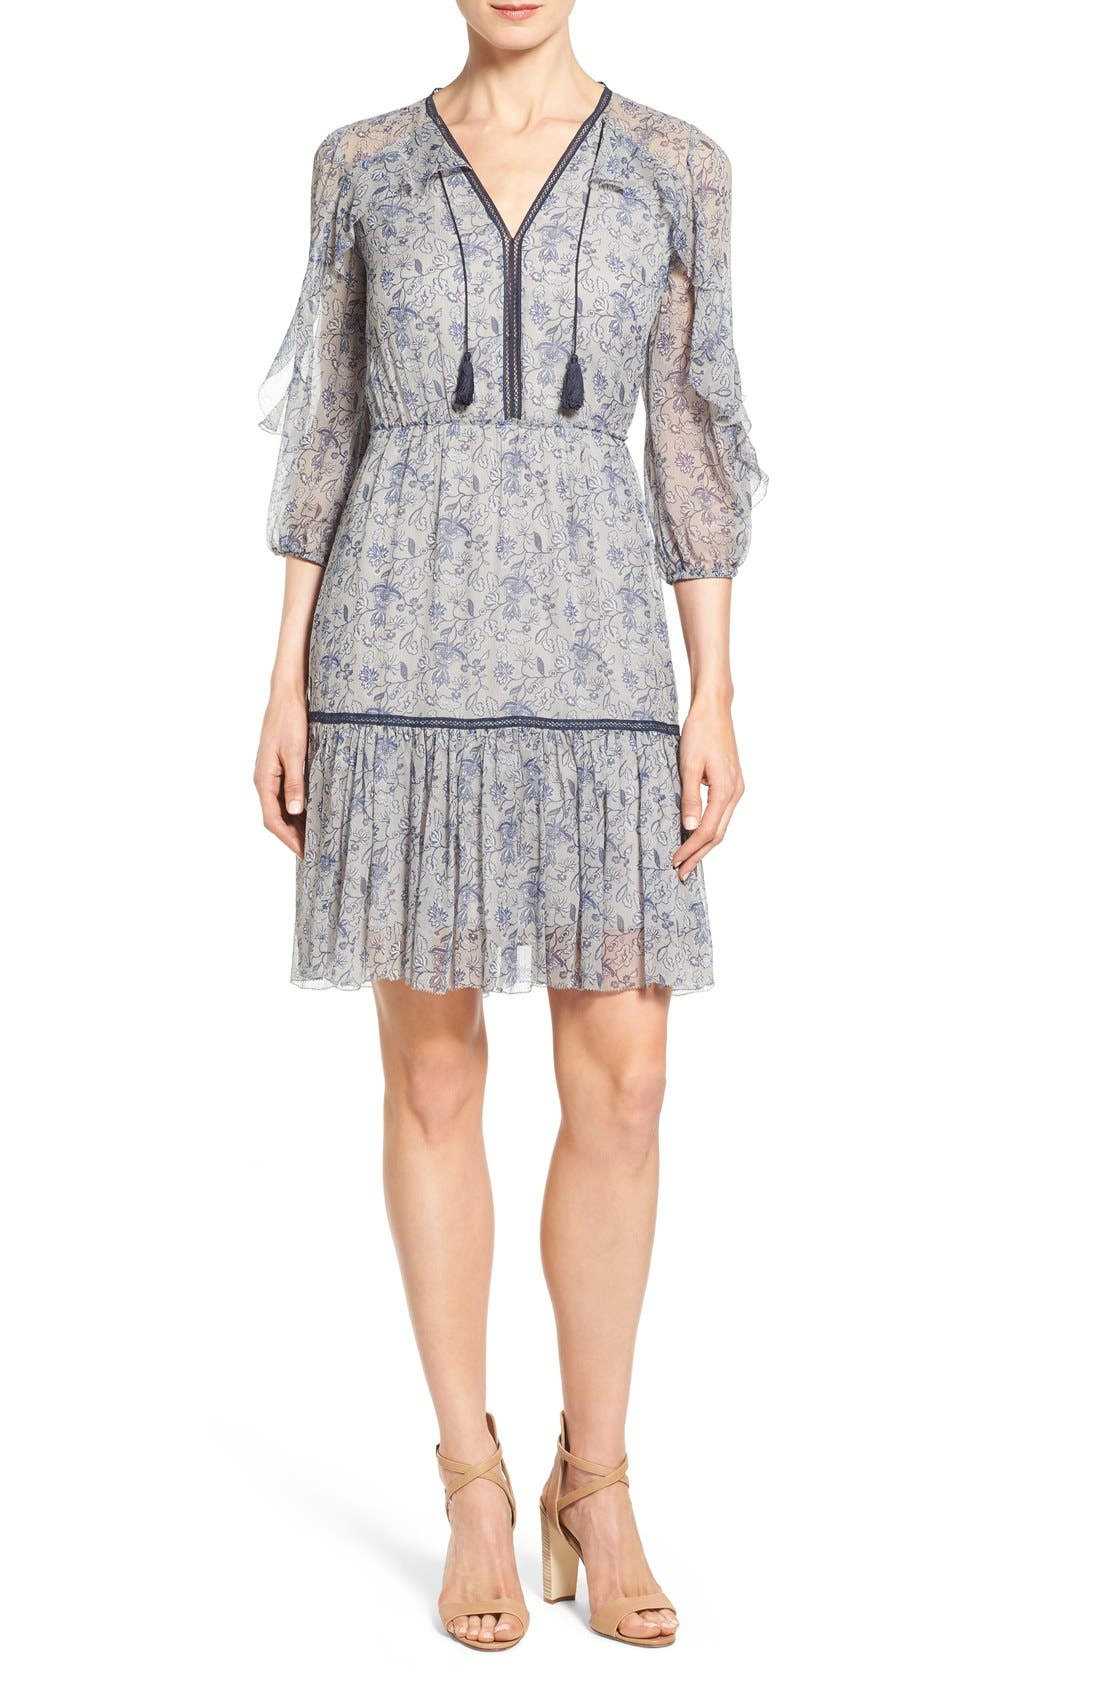 Main Image - Elie Tahari 'Landon' Ruffle Trim A-Line Floral Print Silk Dress